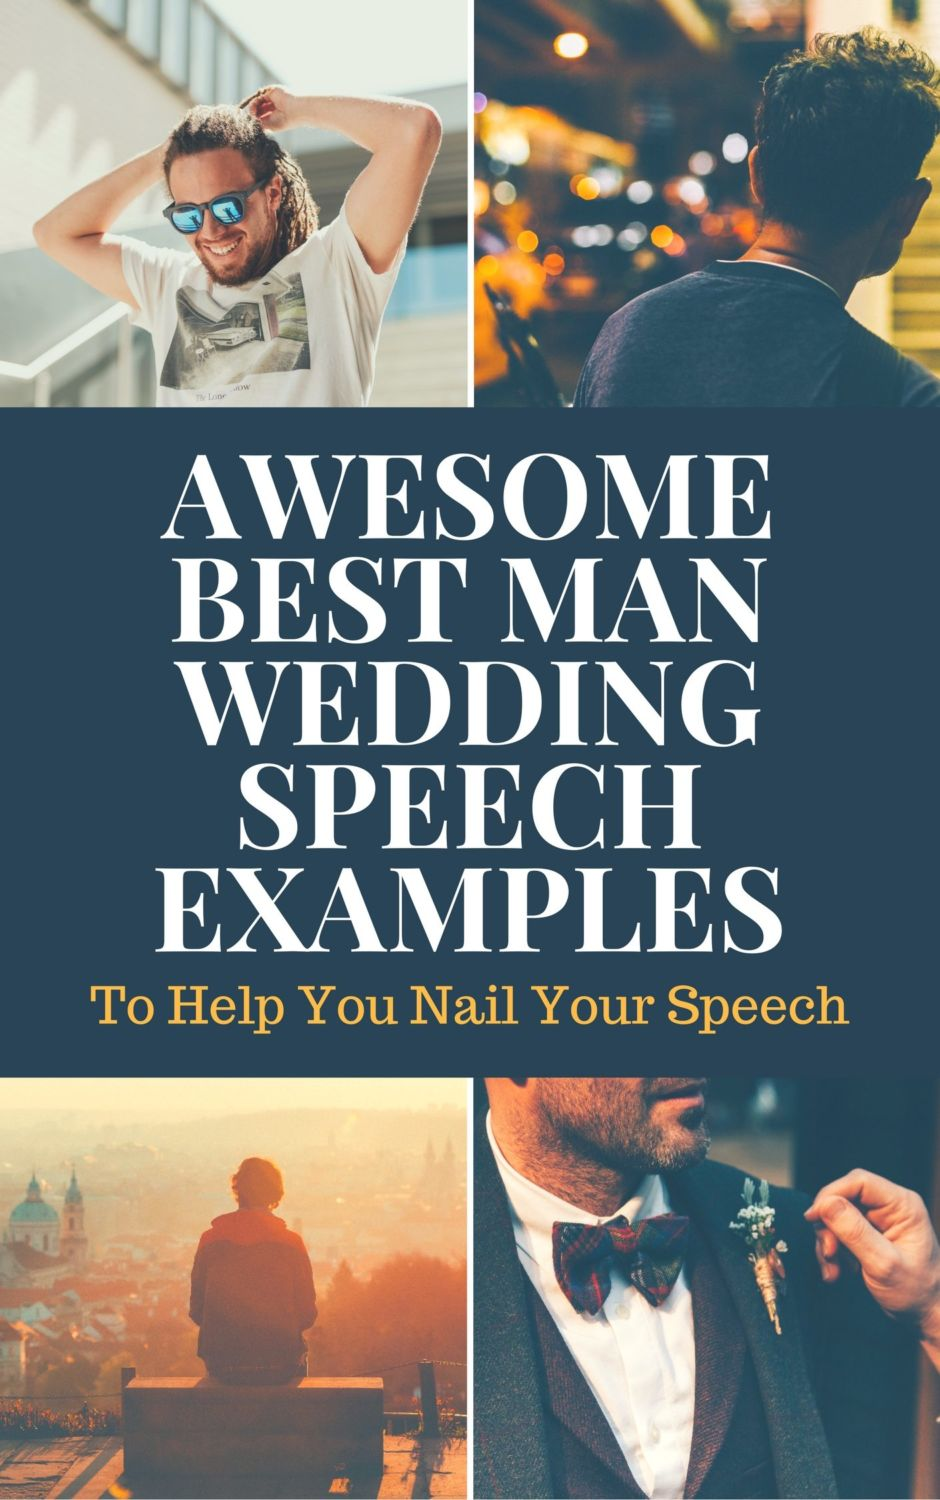 best man speech examples - 57 Unique Wedding Vows Examples Impression